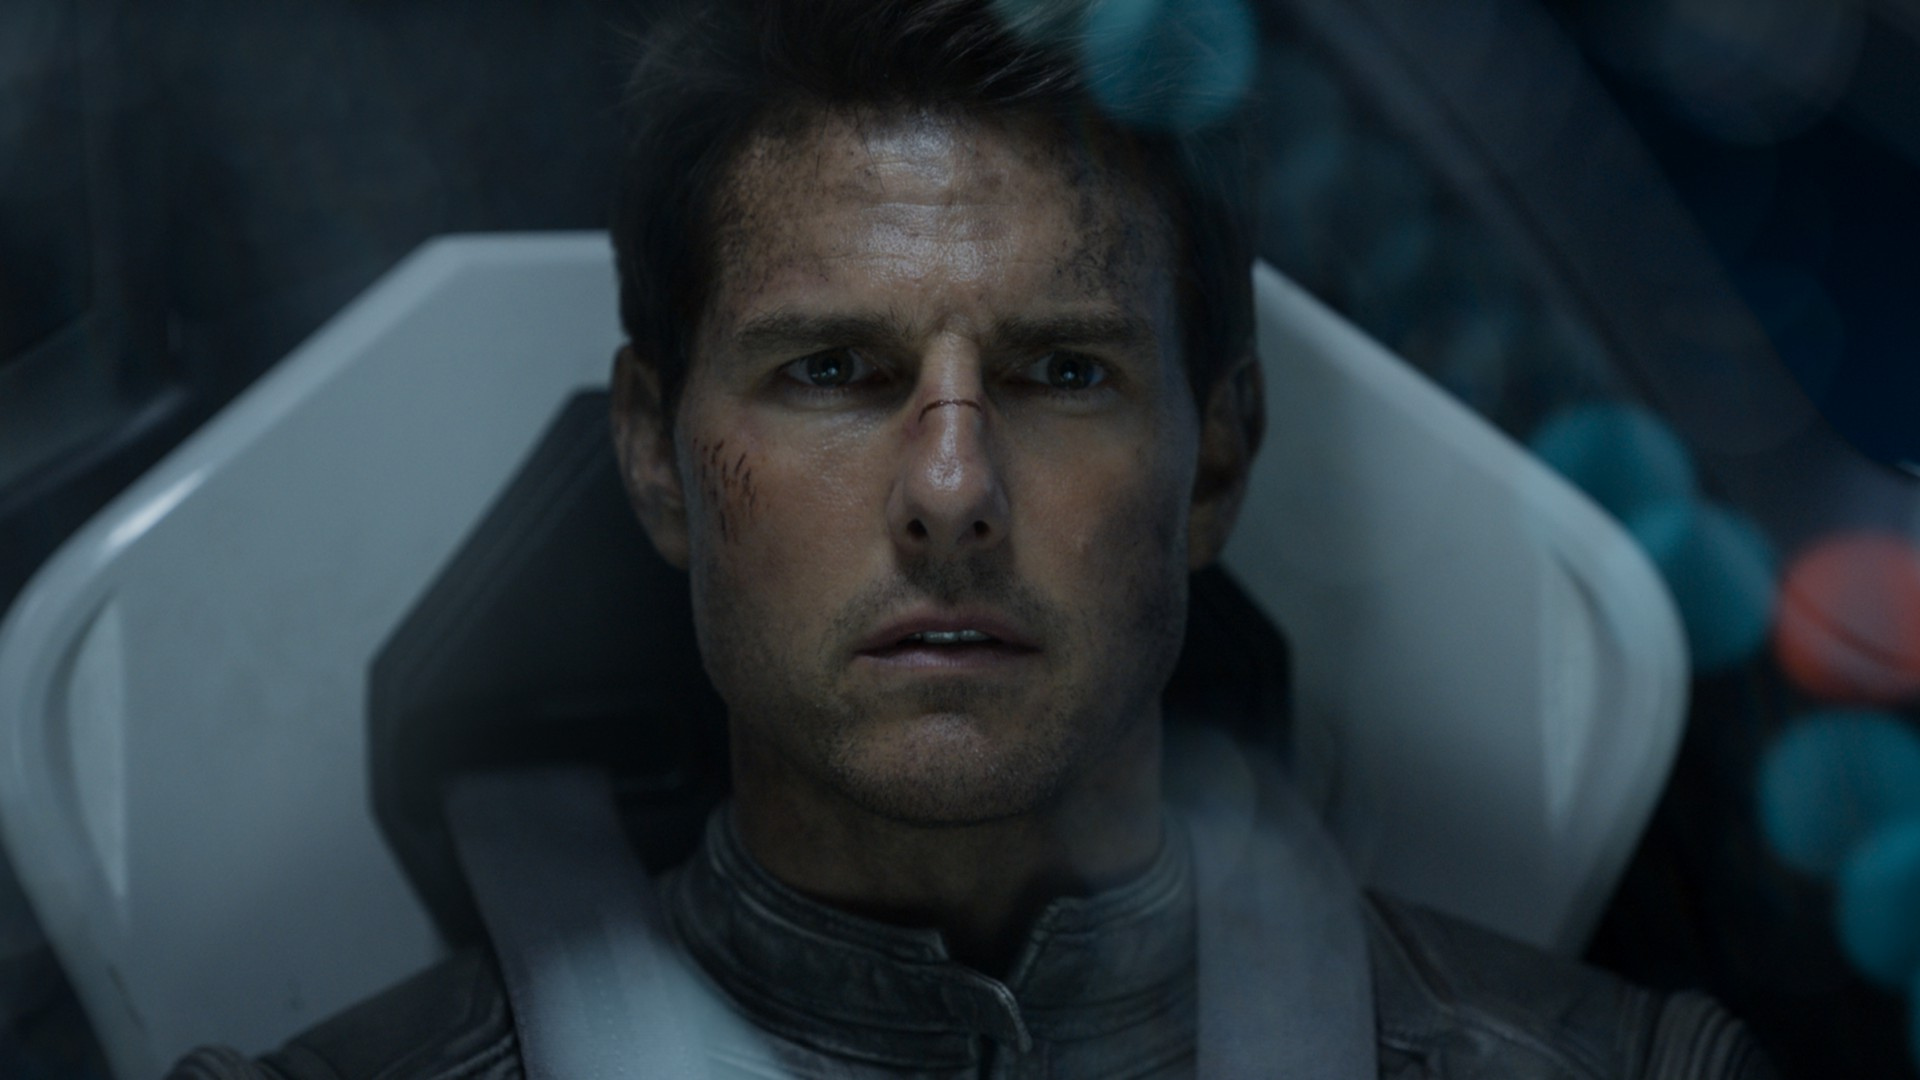 Tom Cruise, Oblivion, Best Movies of 2015, Most Popular Celebs in 2015, actor (horizontal)